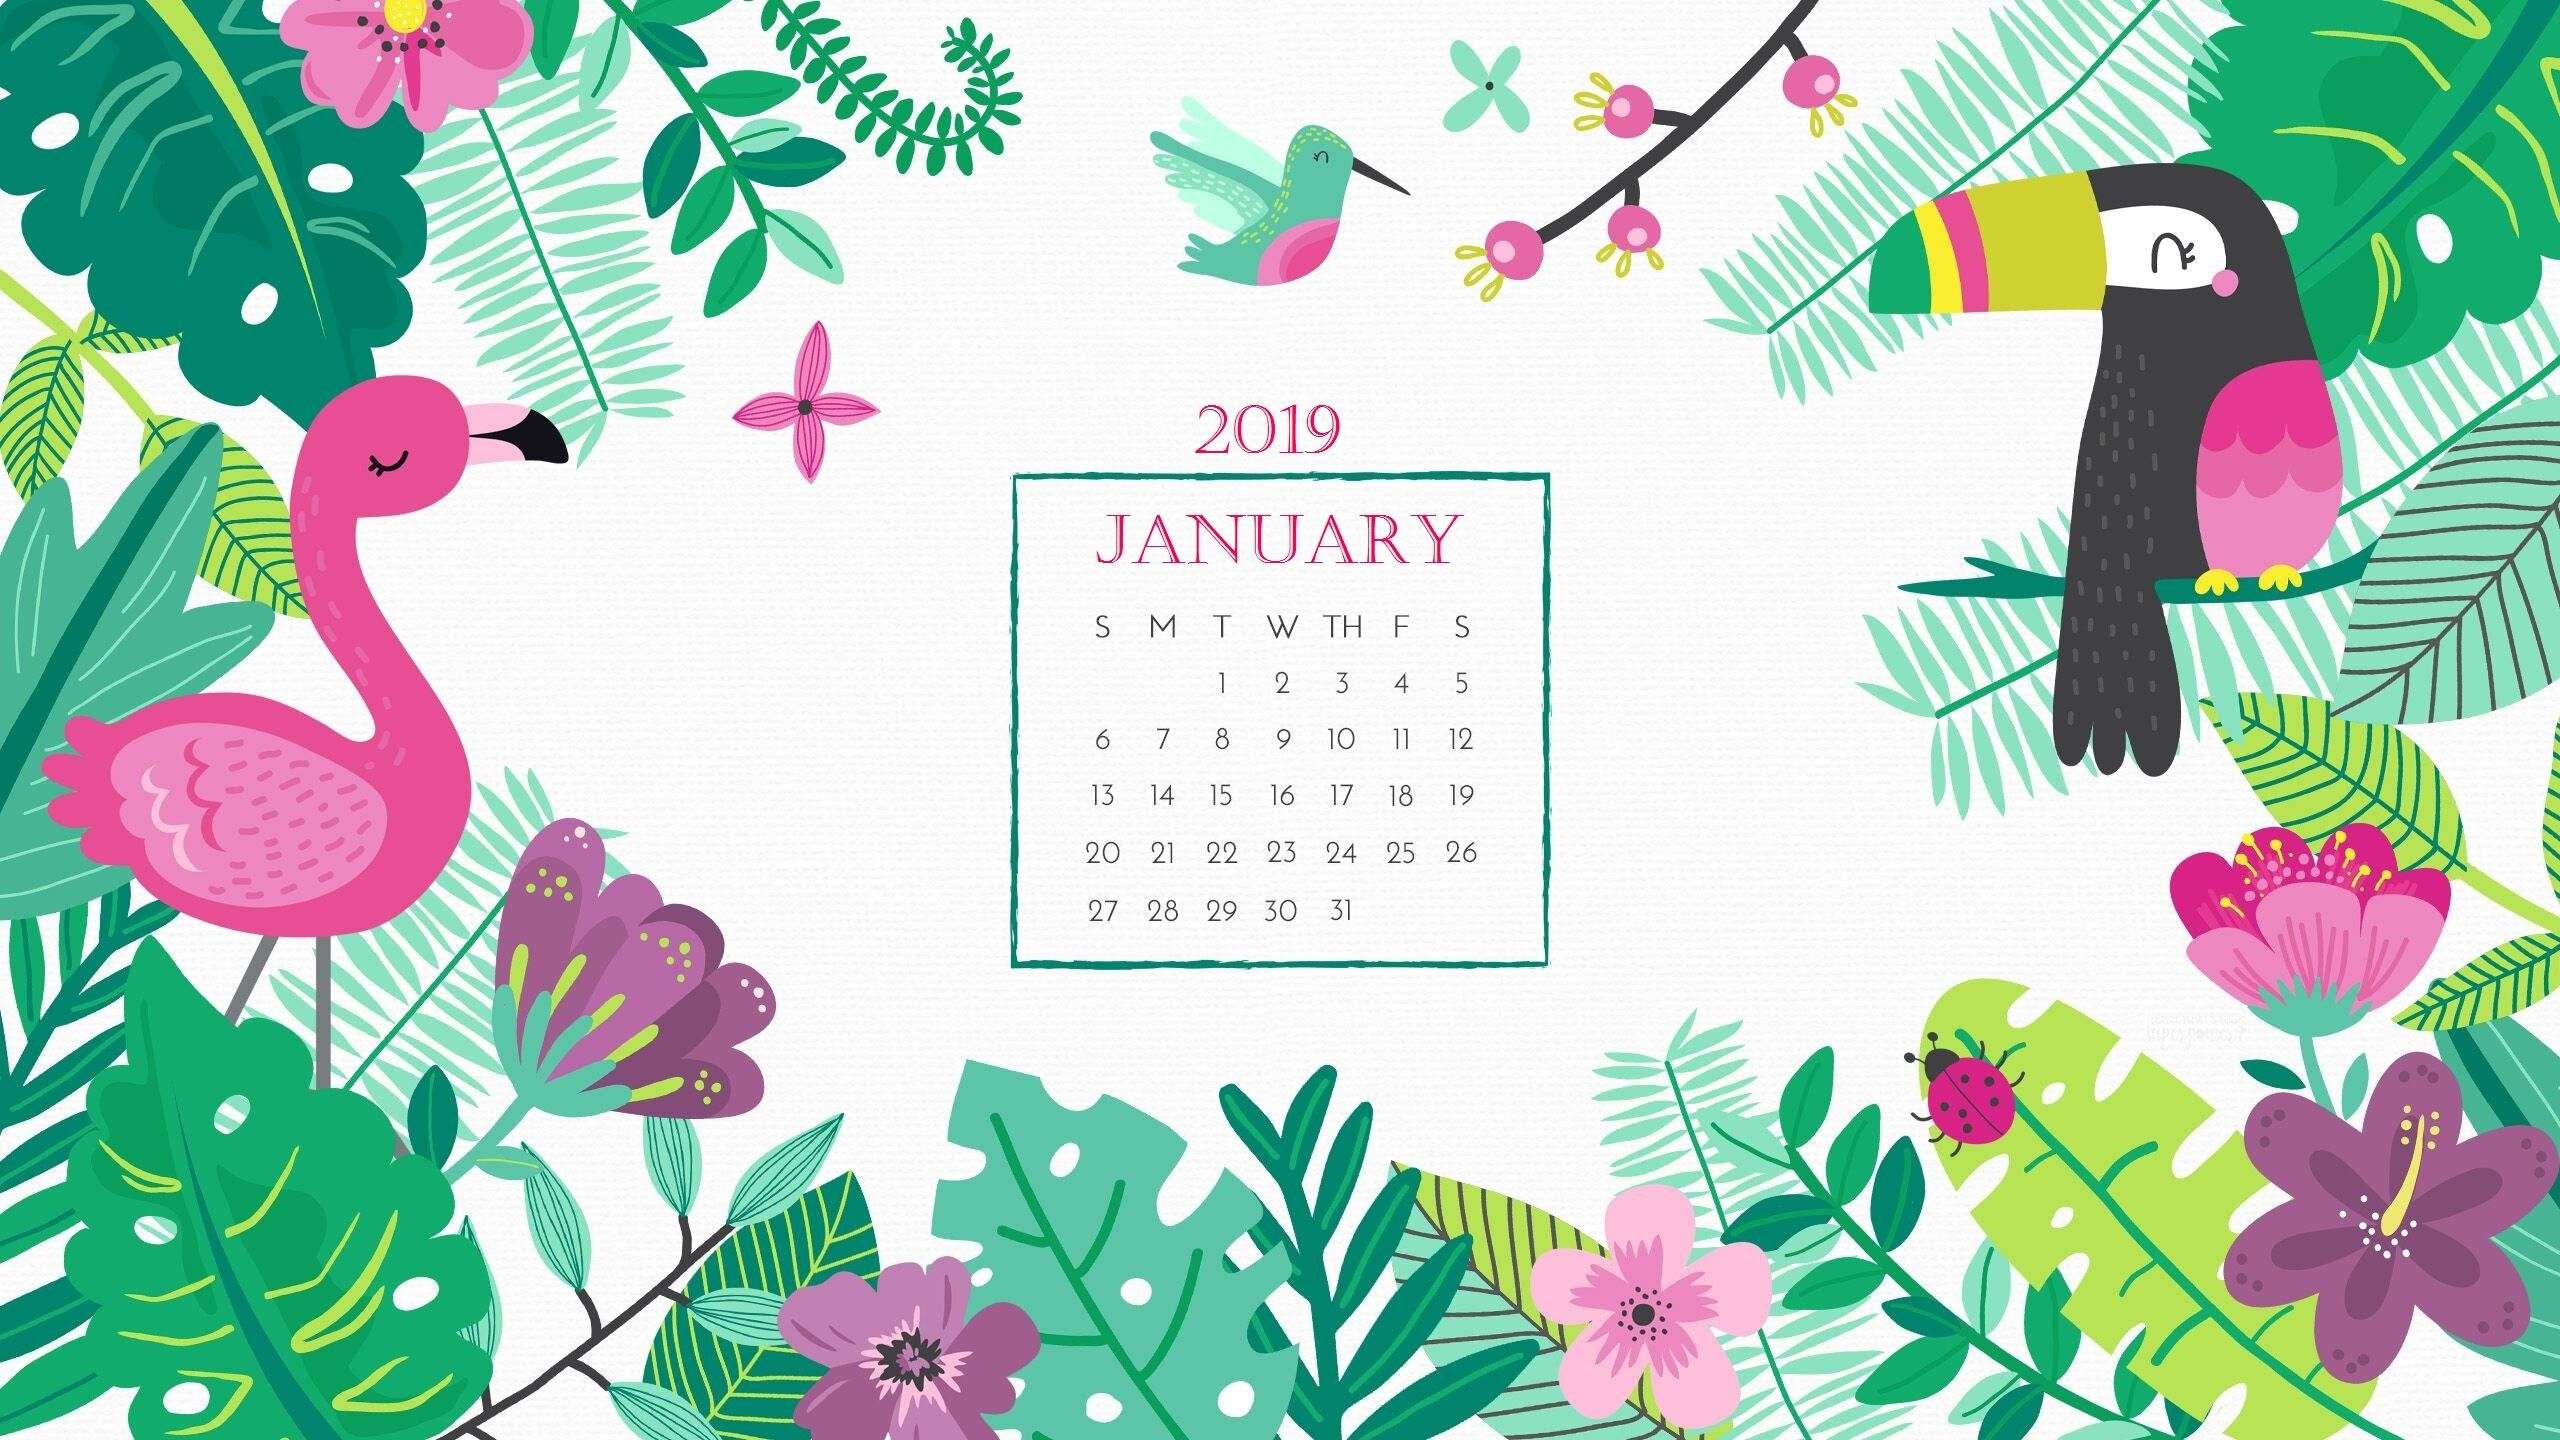 January 2019 Calendar Wallpaper Calendar 2018january 2019 Desktop Calendar Wallpaper Calendar Wallpaper Desktop Calendar Desktop Wallpaper Calendar